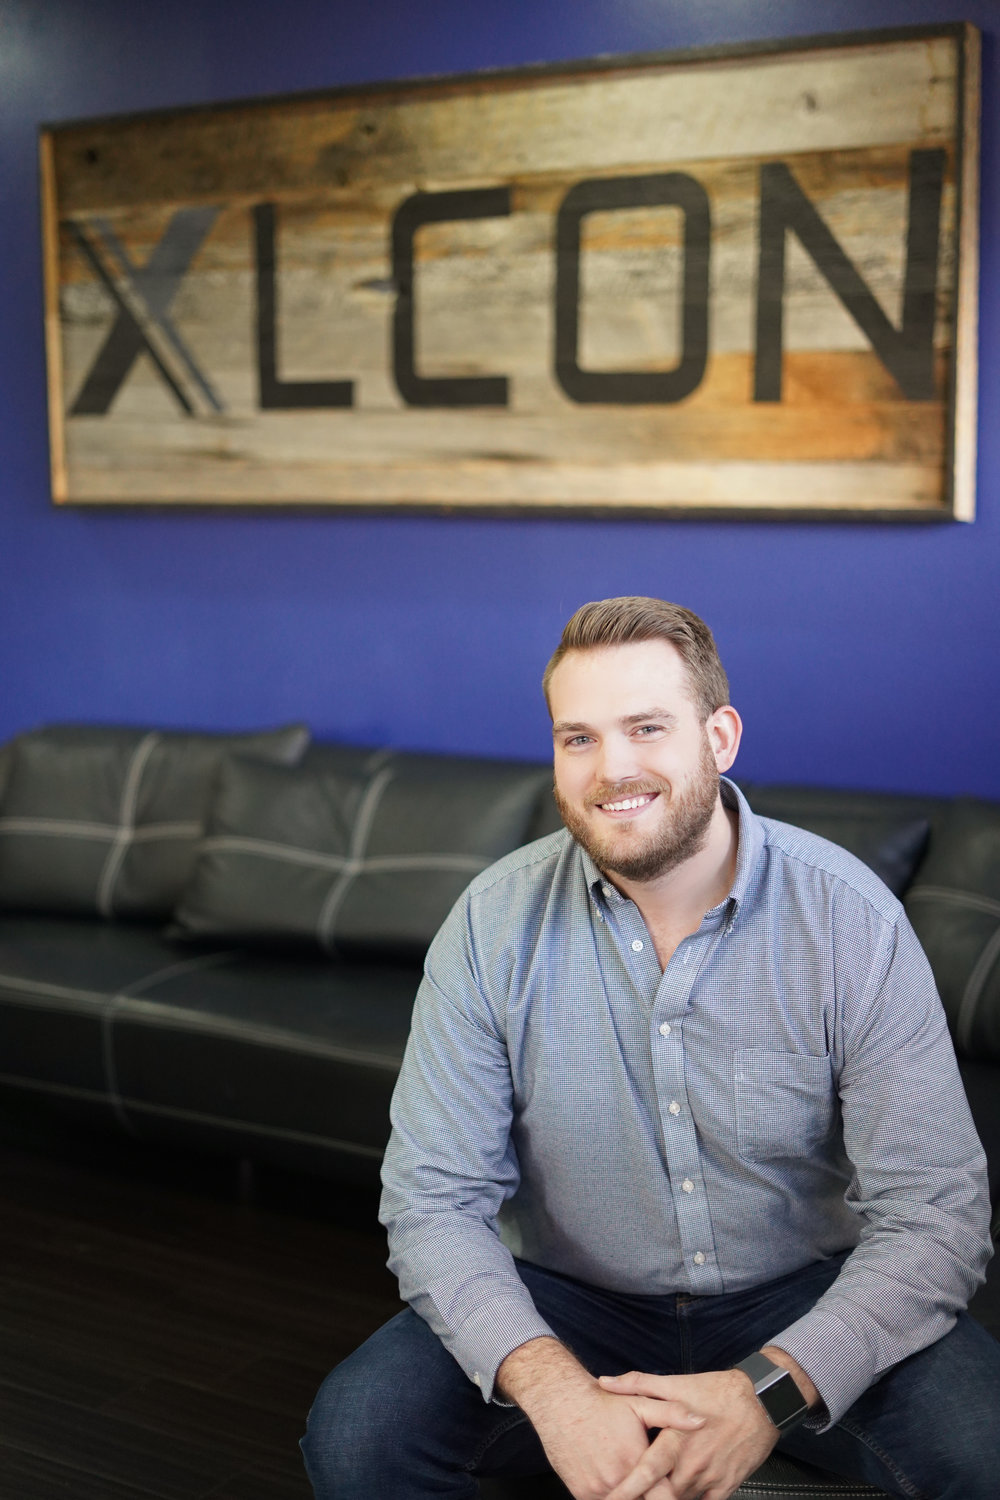 Sean Knox - Technical Services Manager   I grew up in Phoenix.  I've been kayaking with my fiancé on the weekends lately, It's pretty dope.